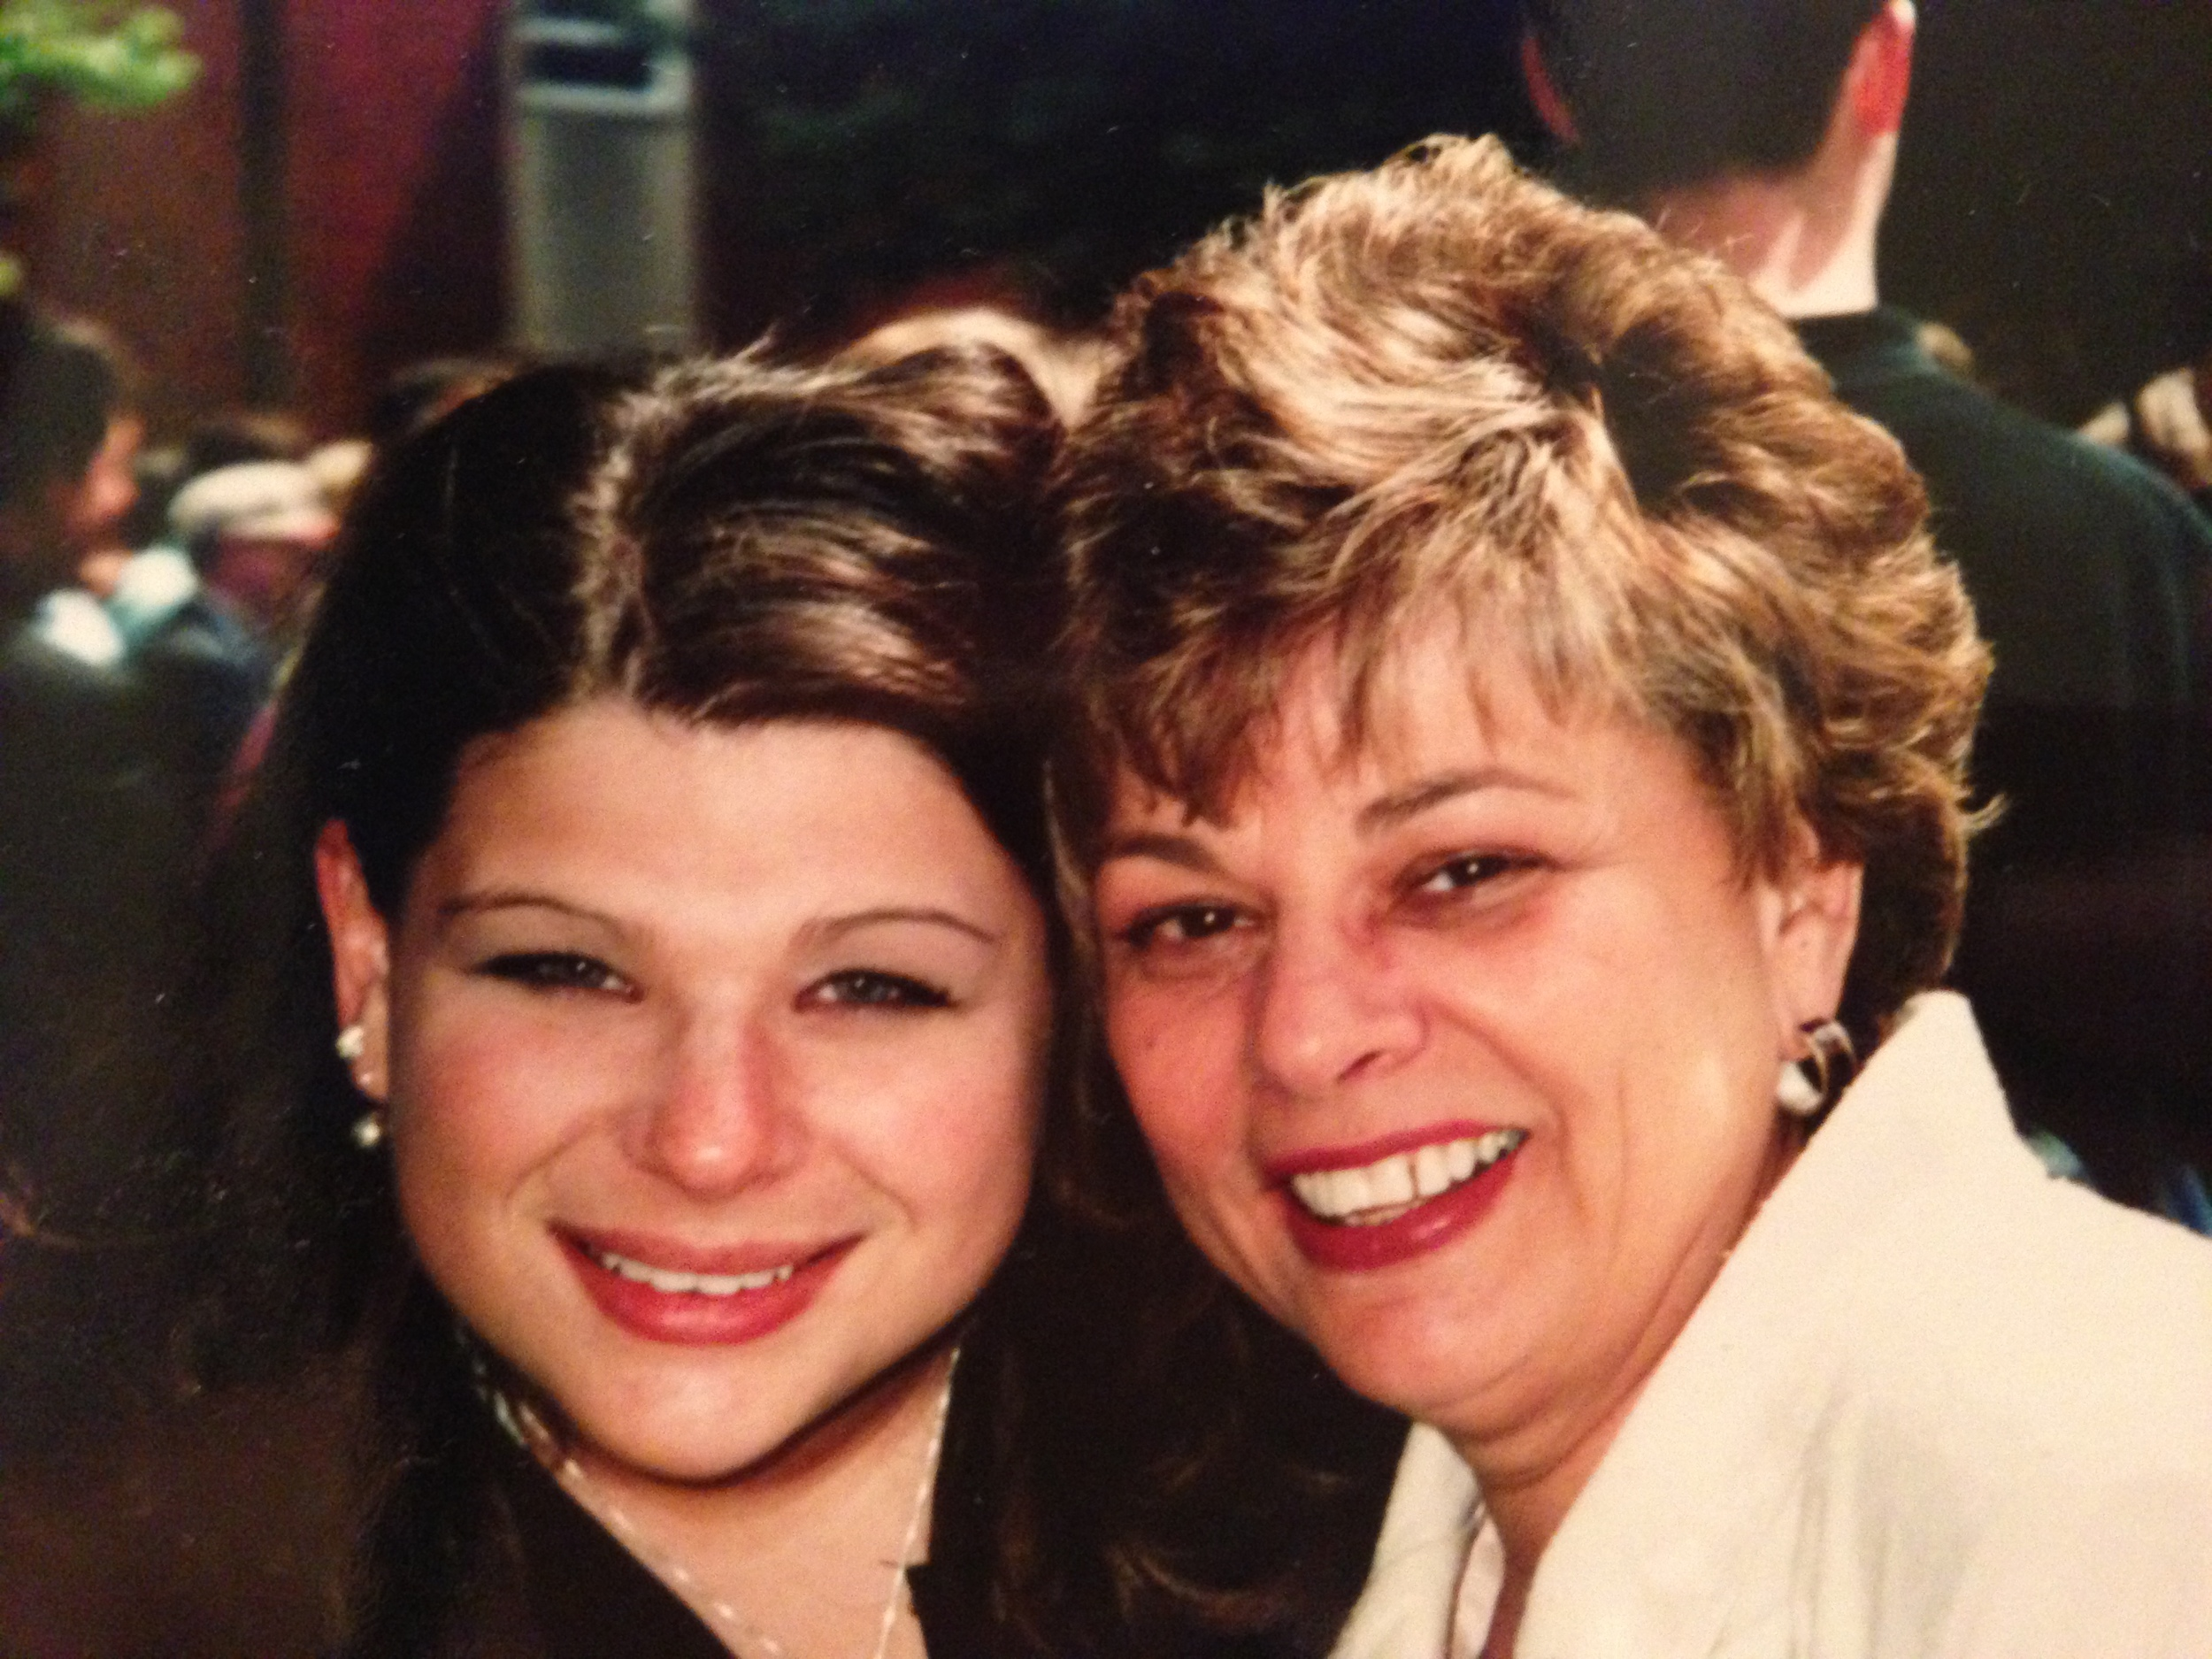 Emily with her mother, who passed away when she was 27.